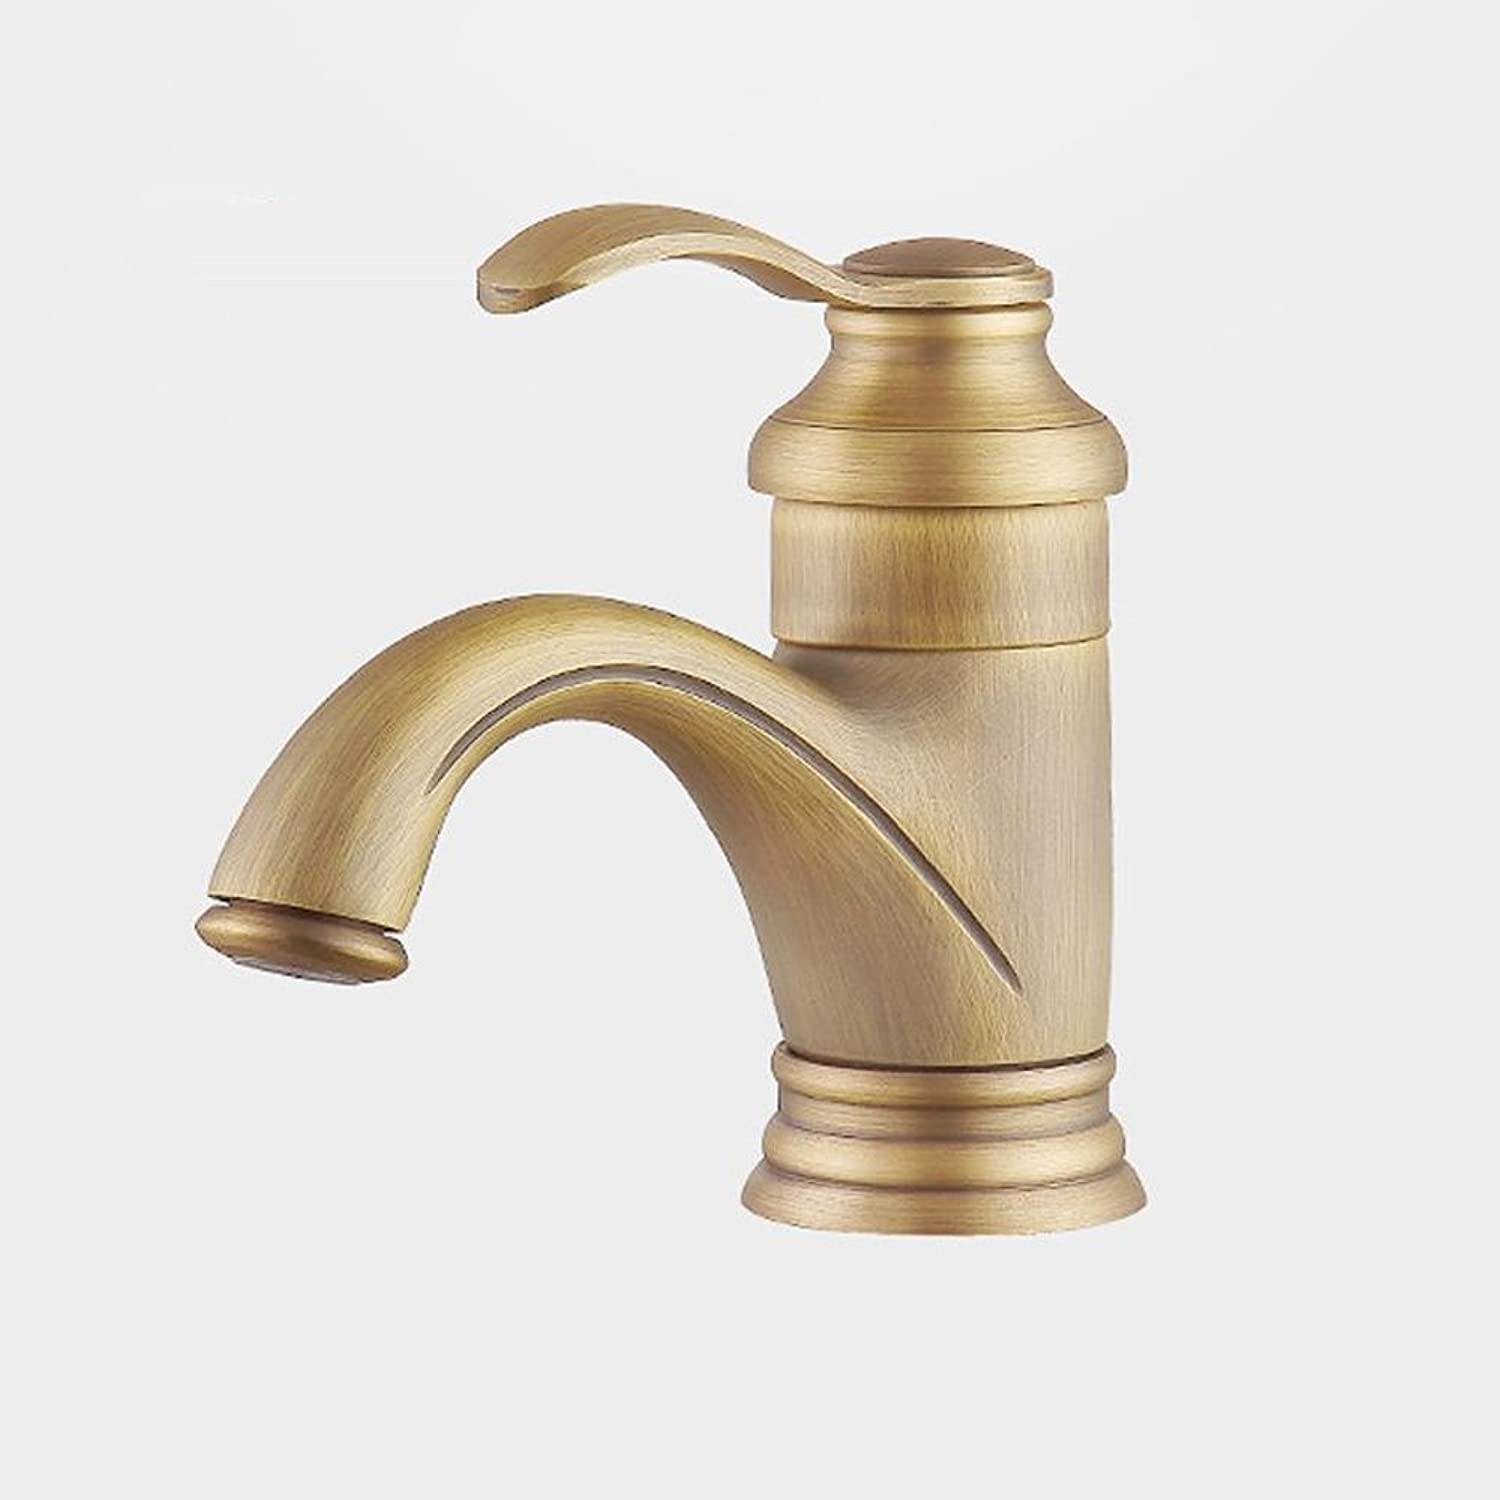 Neilyn Bathroom Basin Waterfall Mixer Tap Brass Fitting-Hot and Cold Single Handle Monobloc Tap-Monobloc Bathroom Sink Faucet -Brass Digreener for Kitchen -Monobloc Bathroom Sink Faucet ( Size   S )